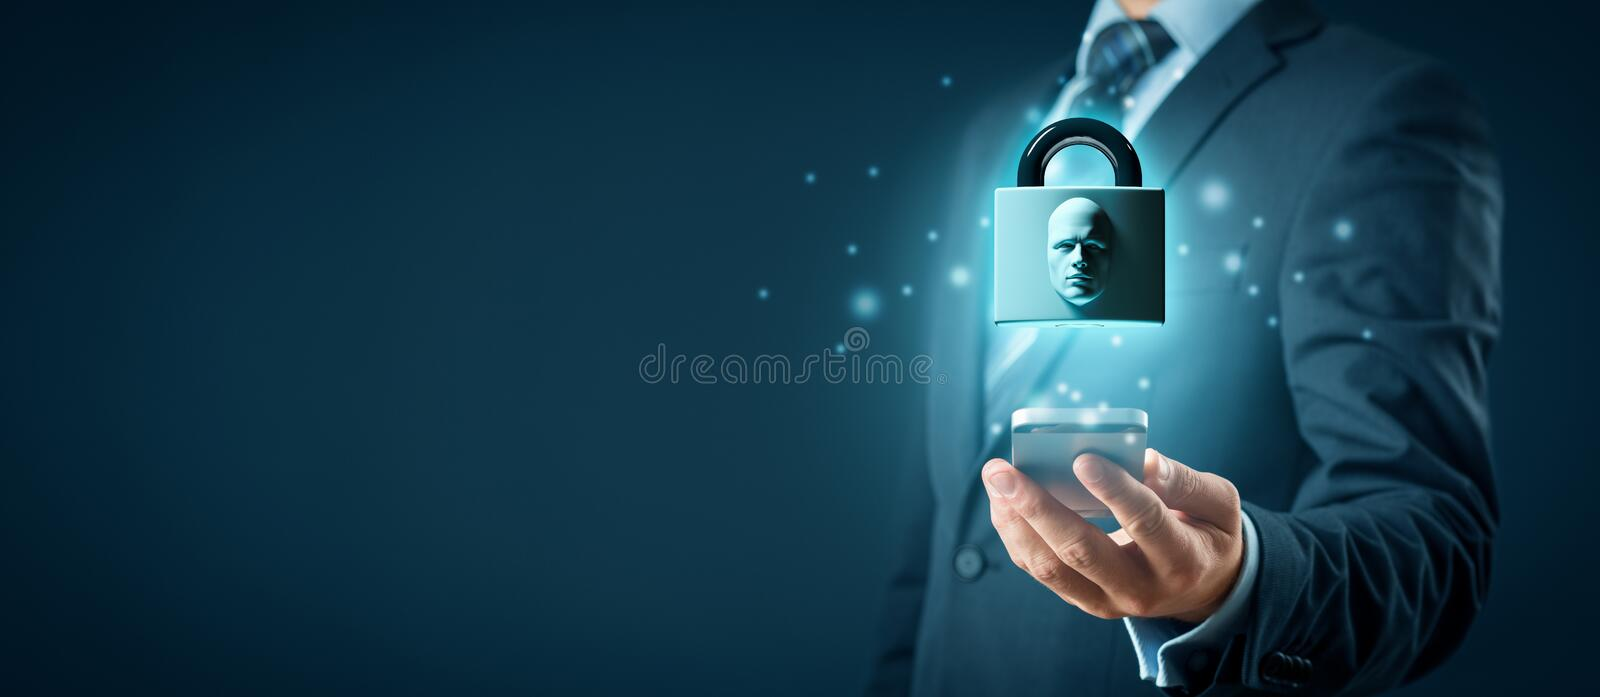 Face identification smart phone unlock royalty free stock photos